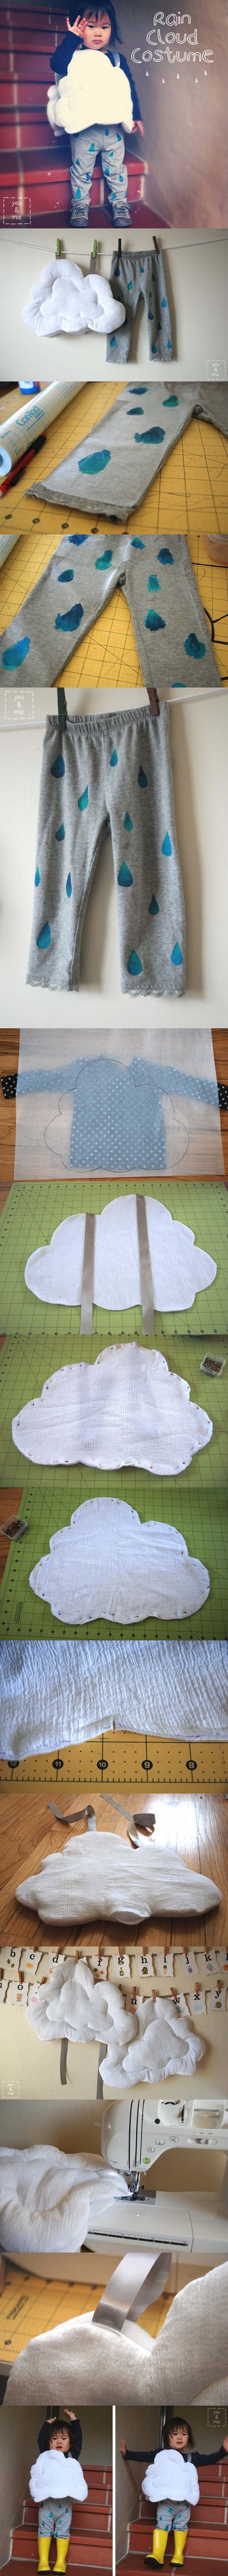 8 DIY Rain Cloud Tutorial